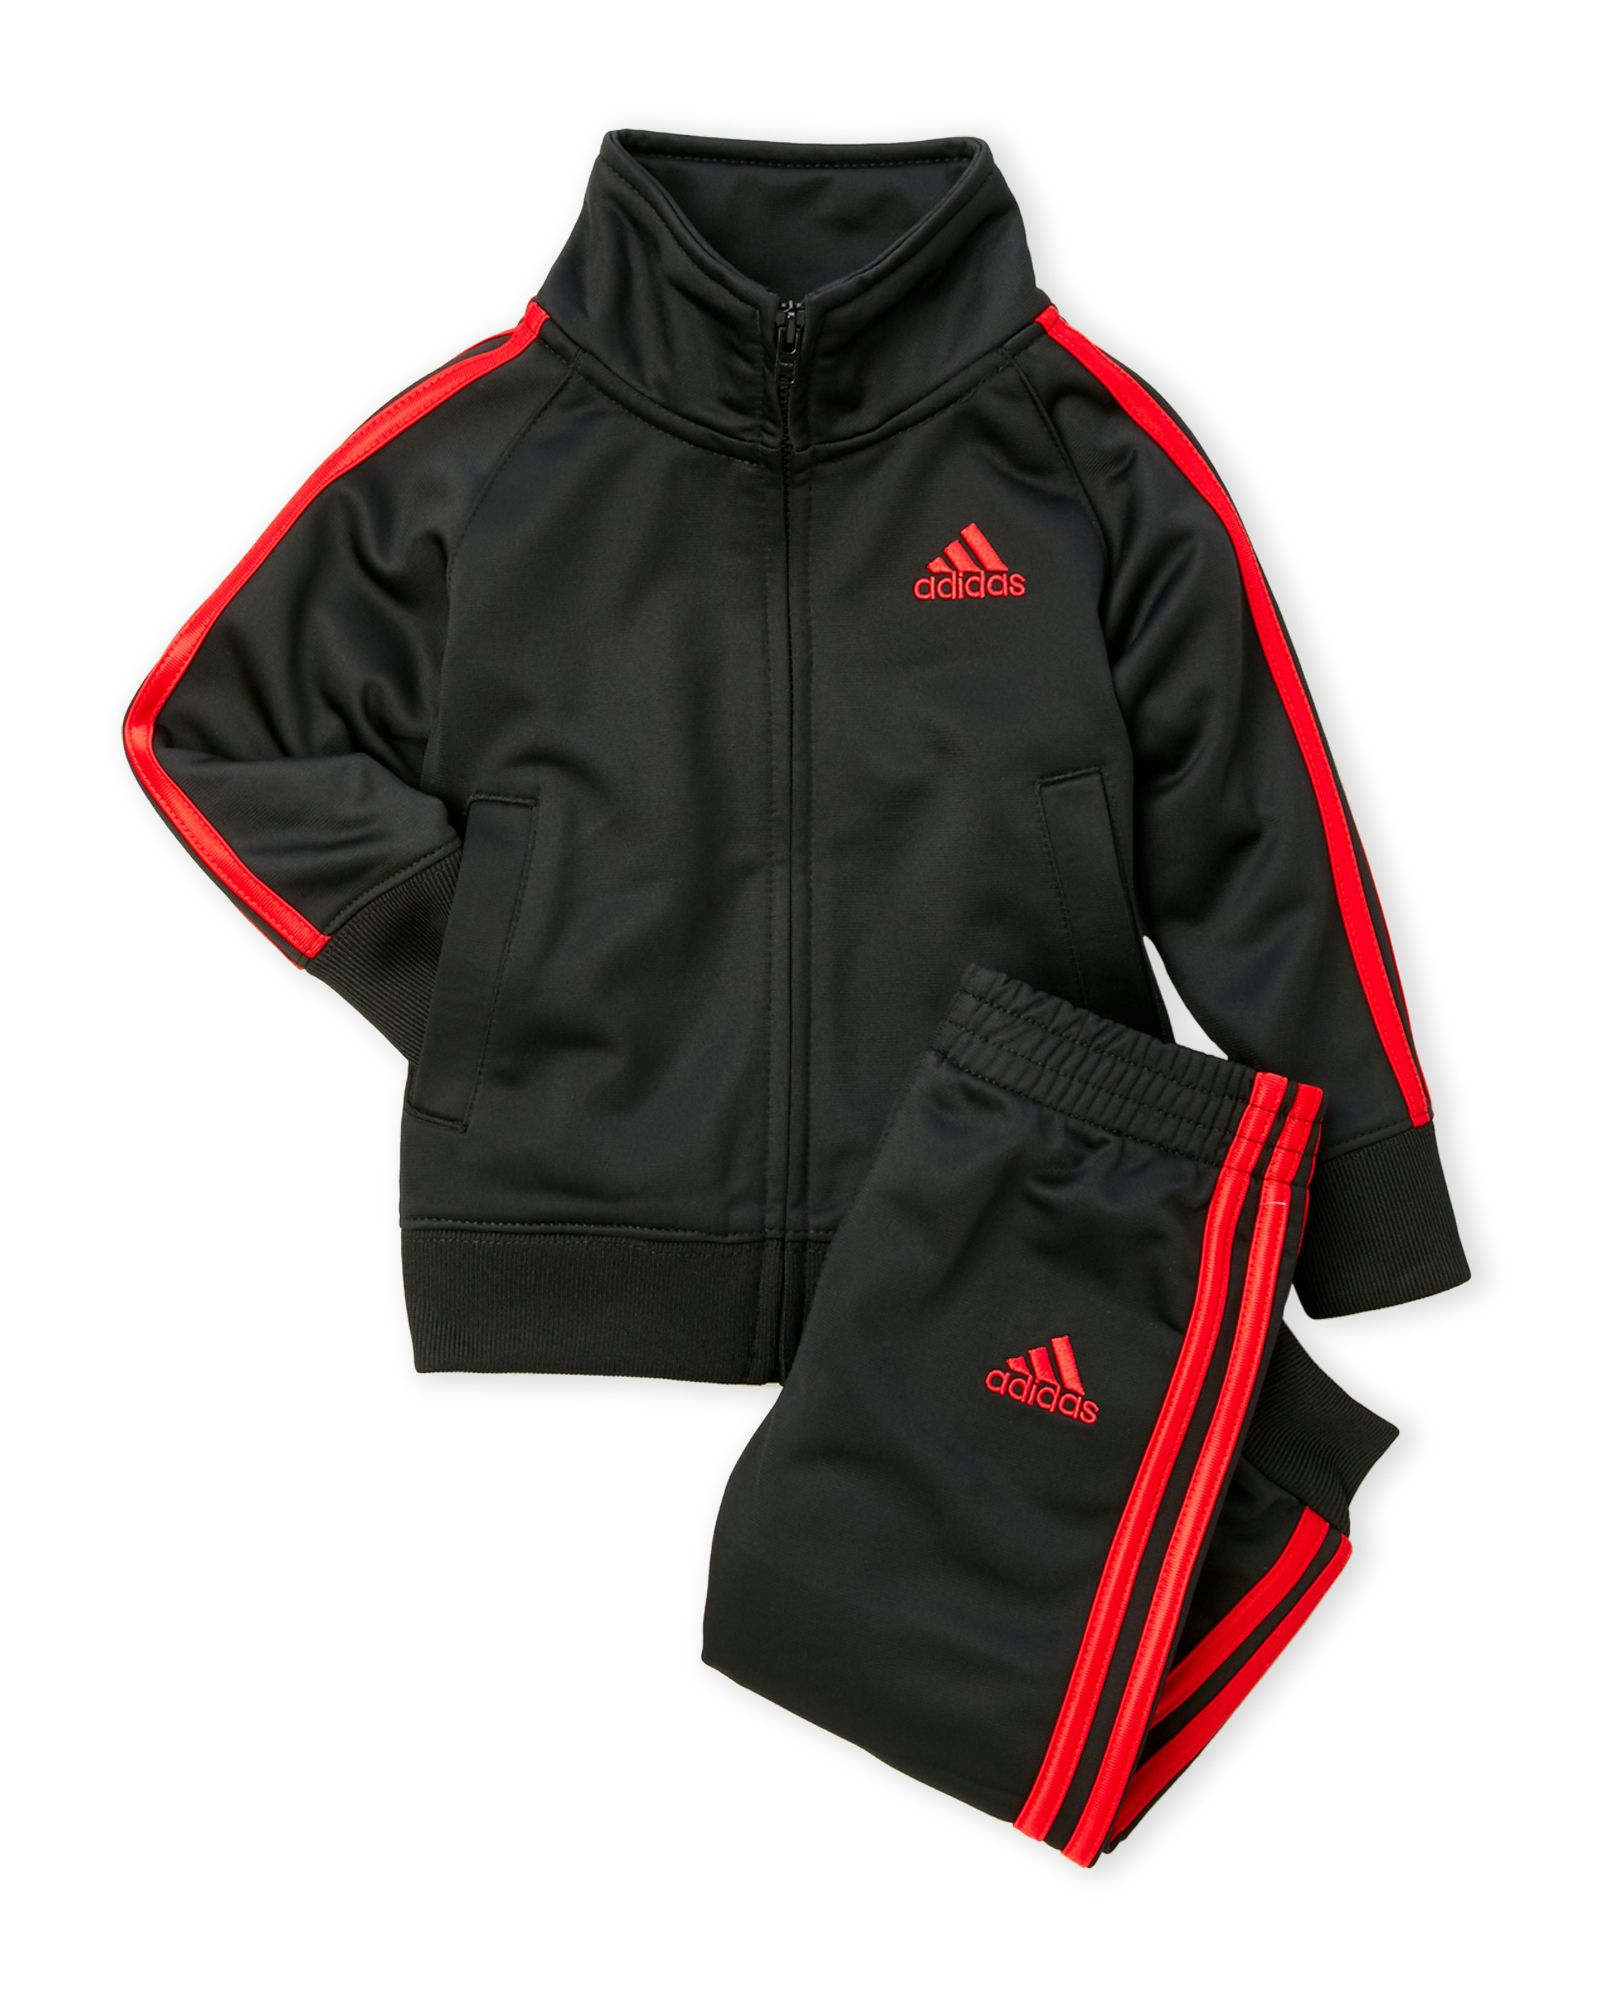 Adidas (Toddler Boys) Two-Piece Jogger Tracksuit Set f92c1426b